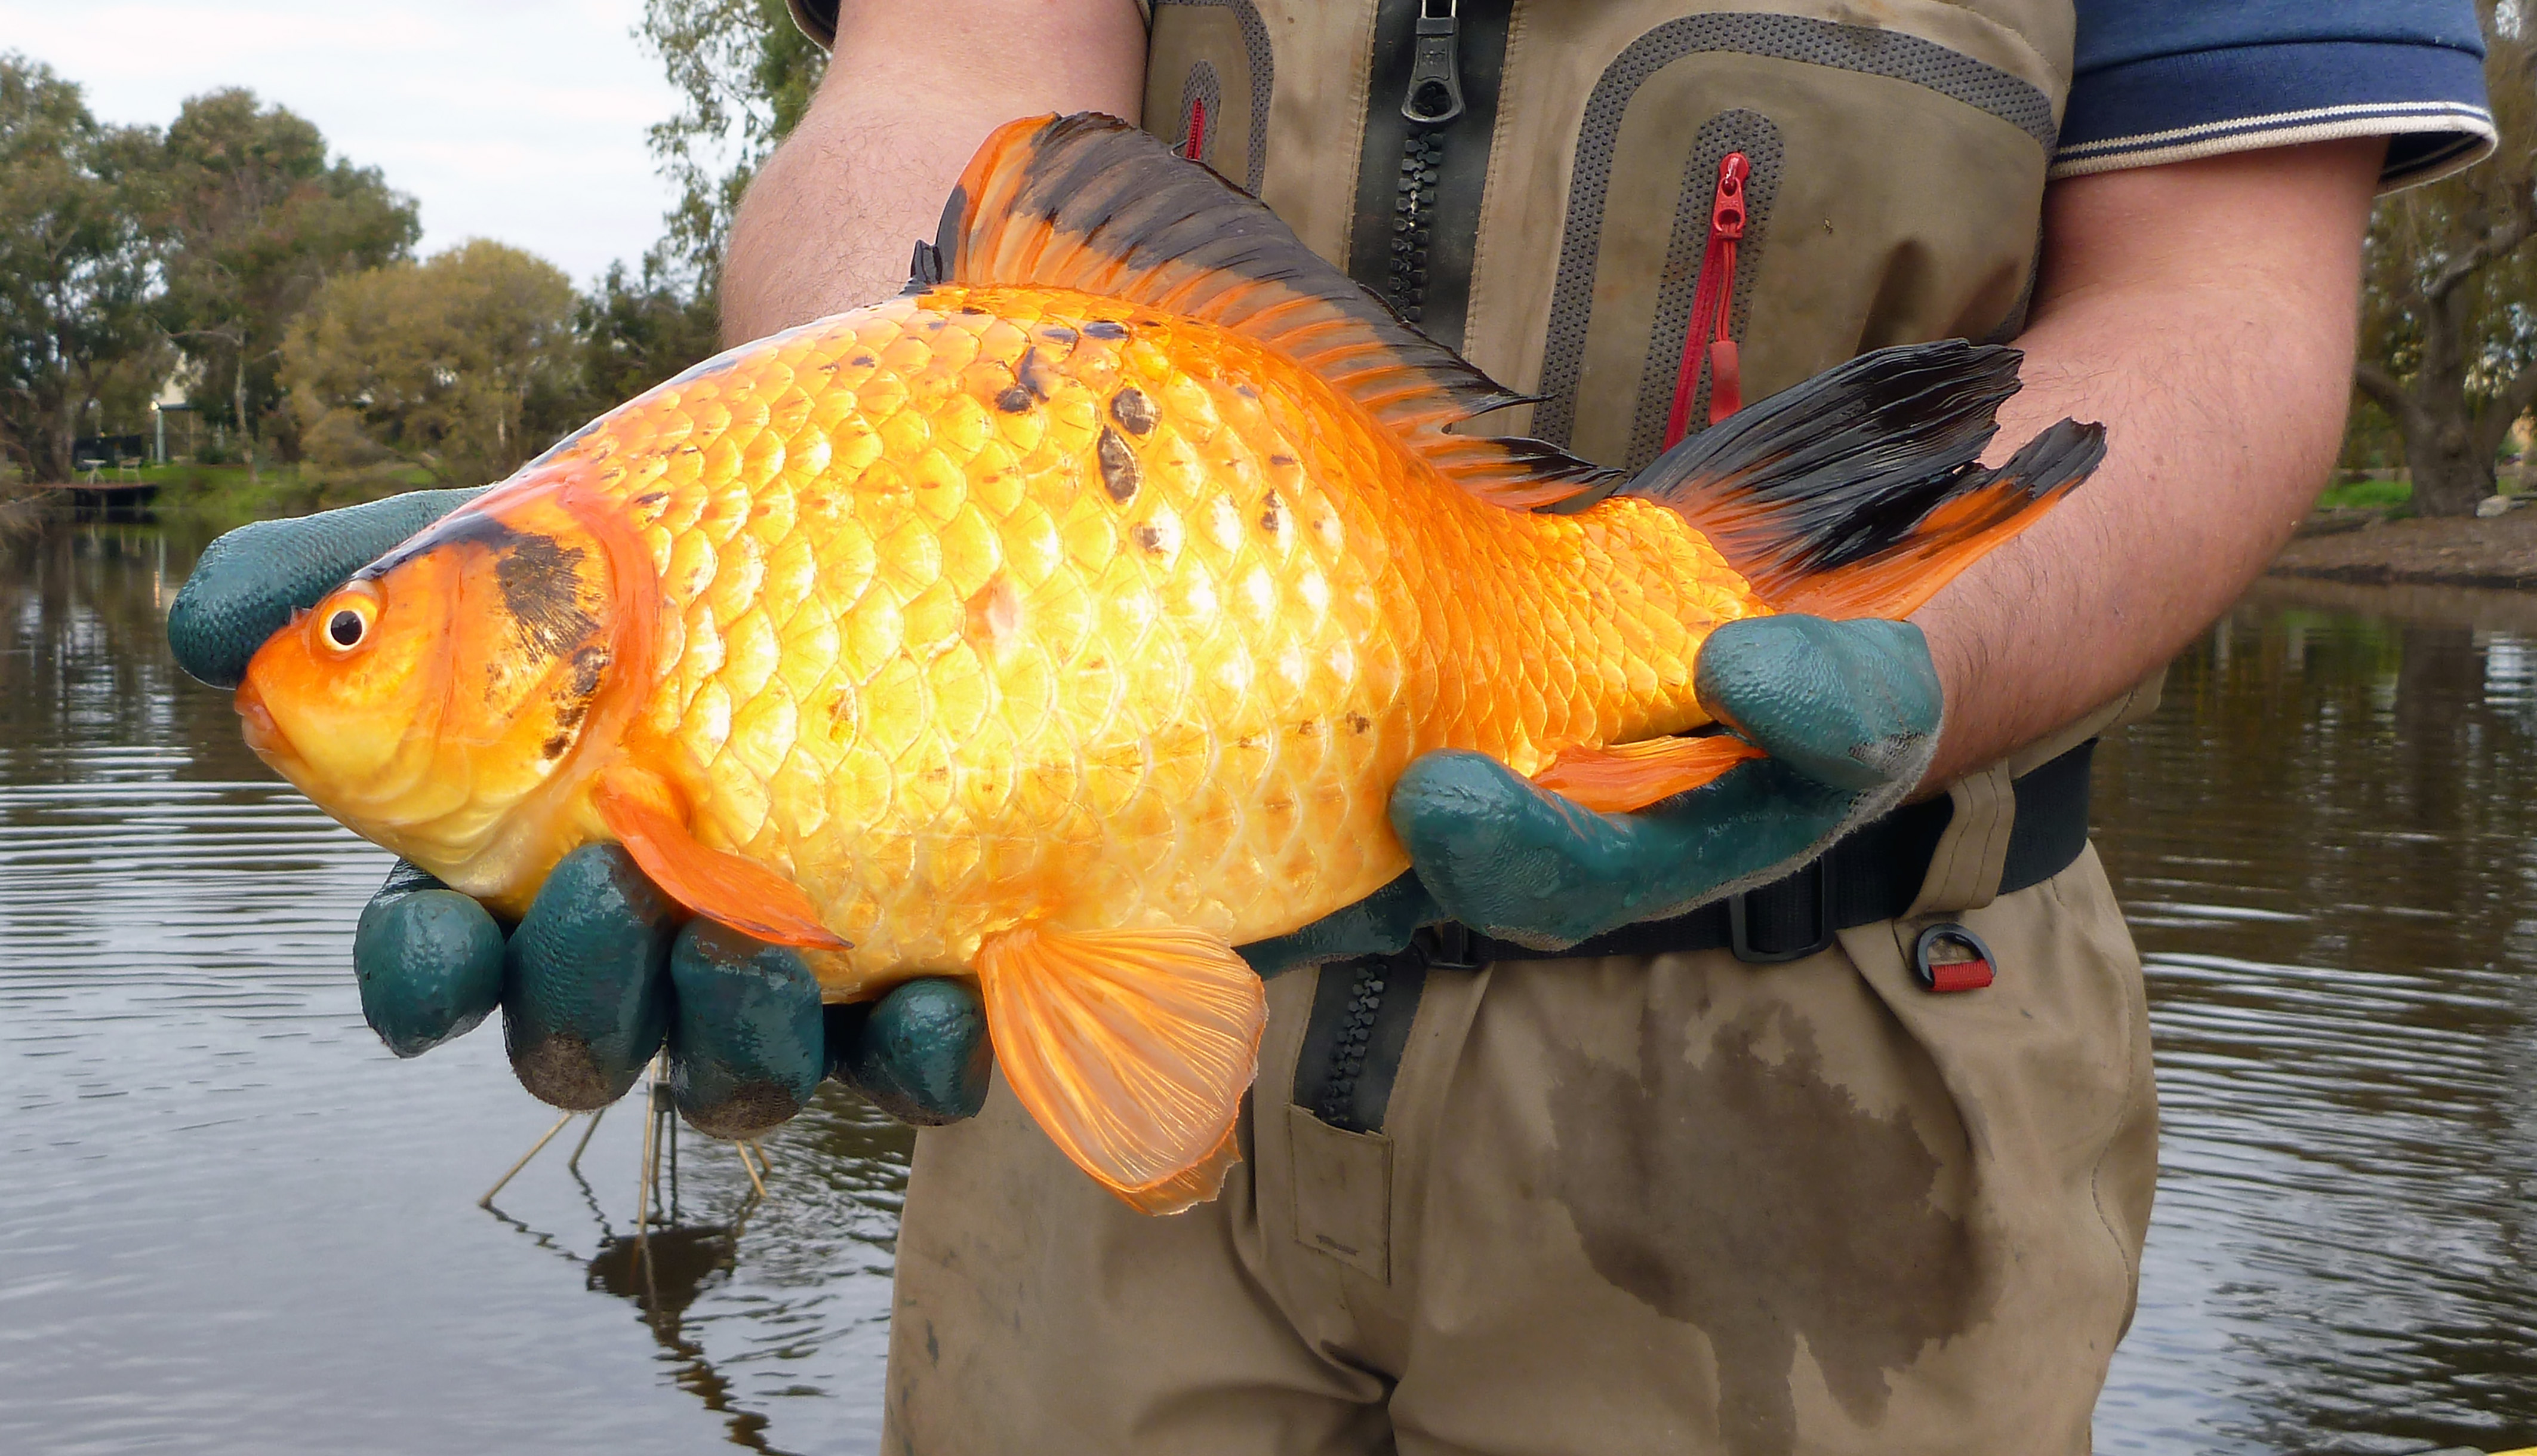 Gold Zilla Massive Goldfish Growing Faster Than